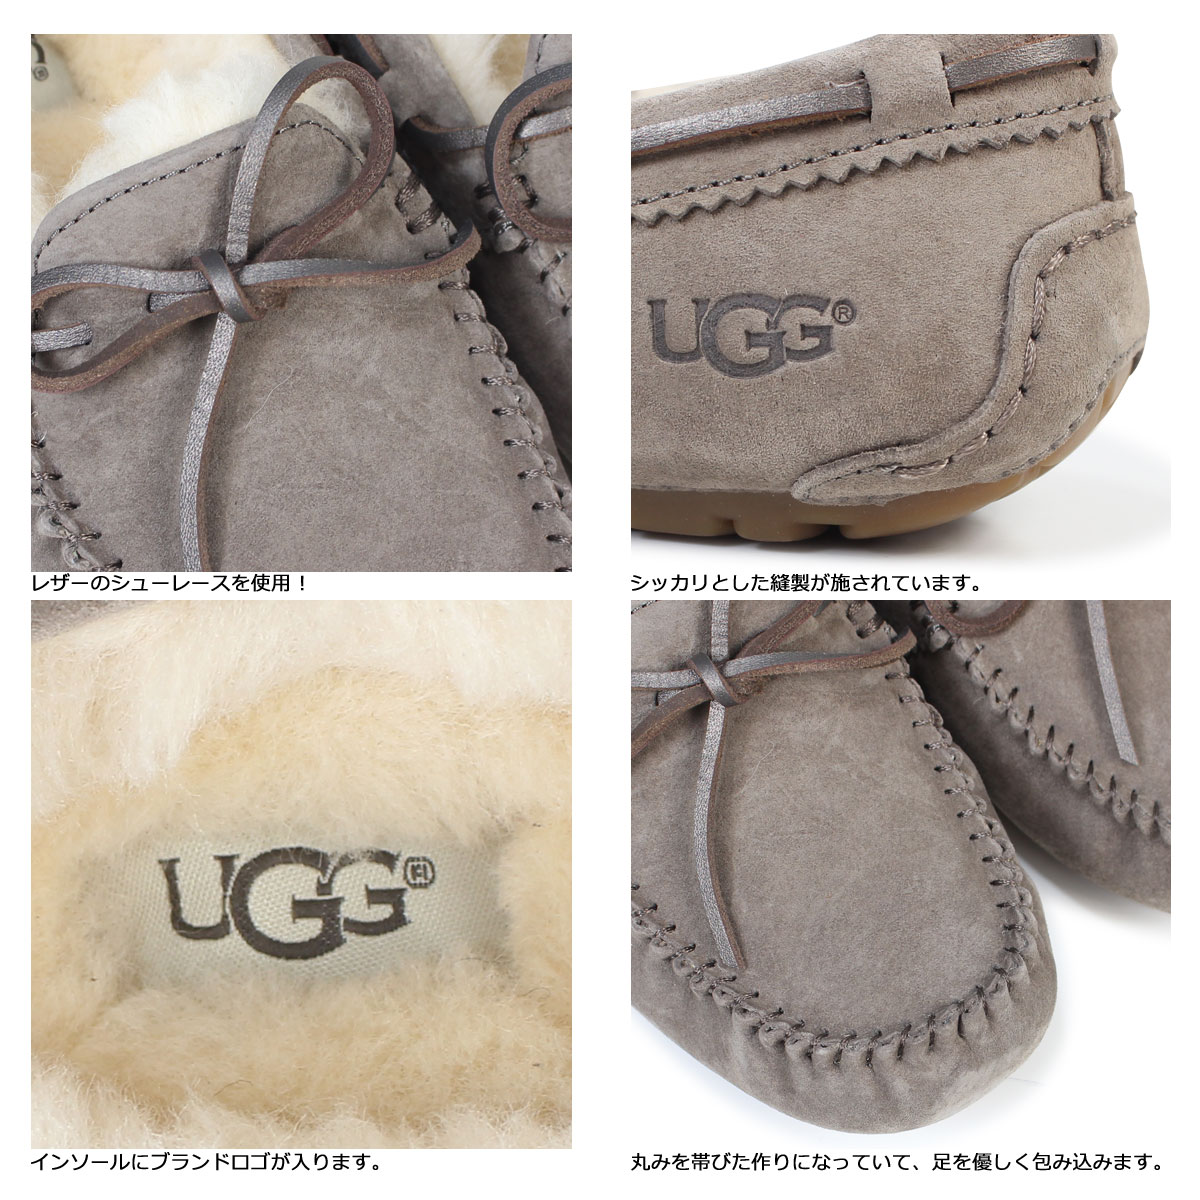 アグ UGG Dakota Lady's moccasins mouton shoes metallic WOMENS DAKOTA METALLIC 1019069 sheepskin brown purple [8/23 Shinnyu load] [178]